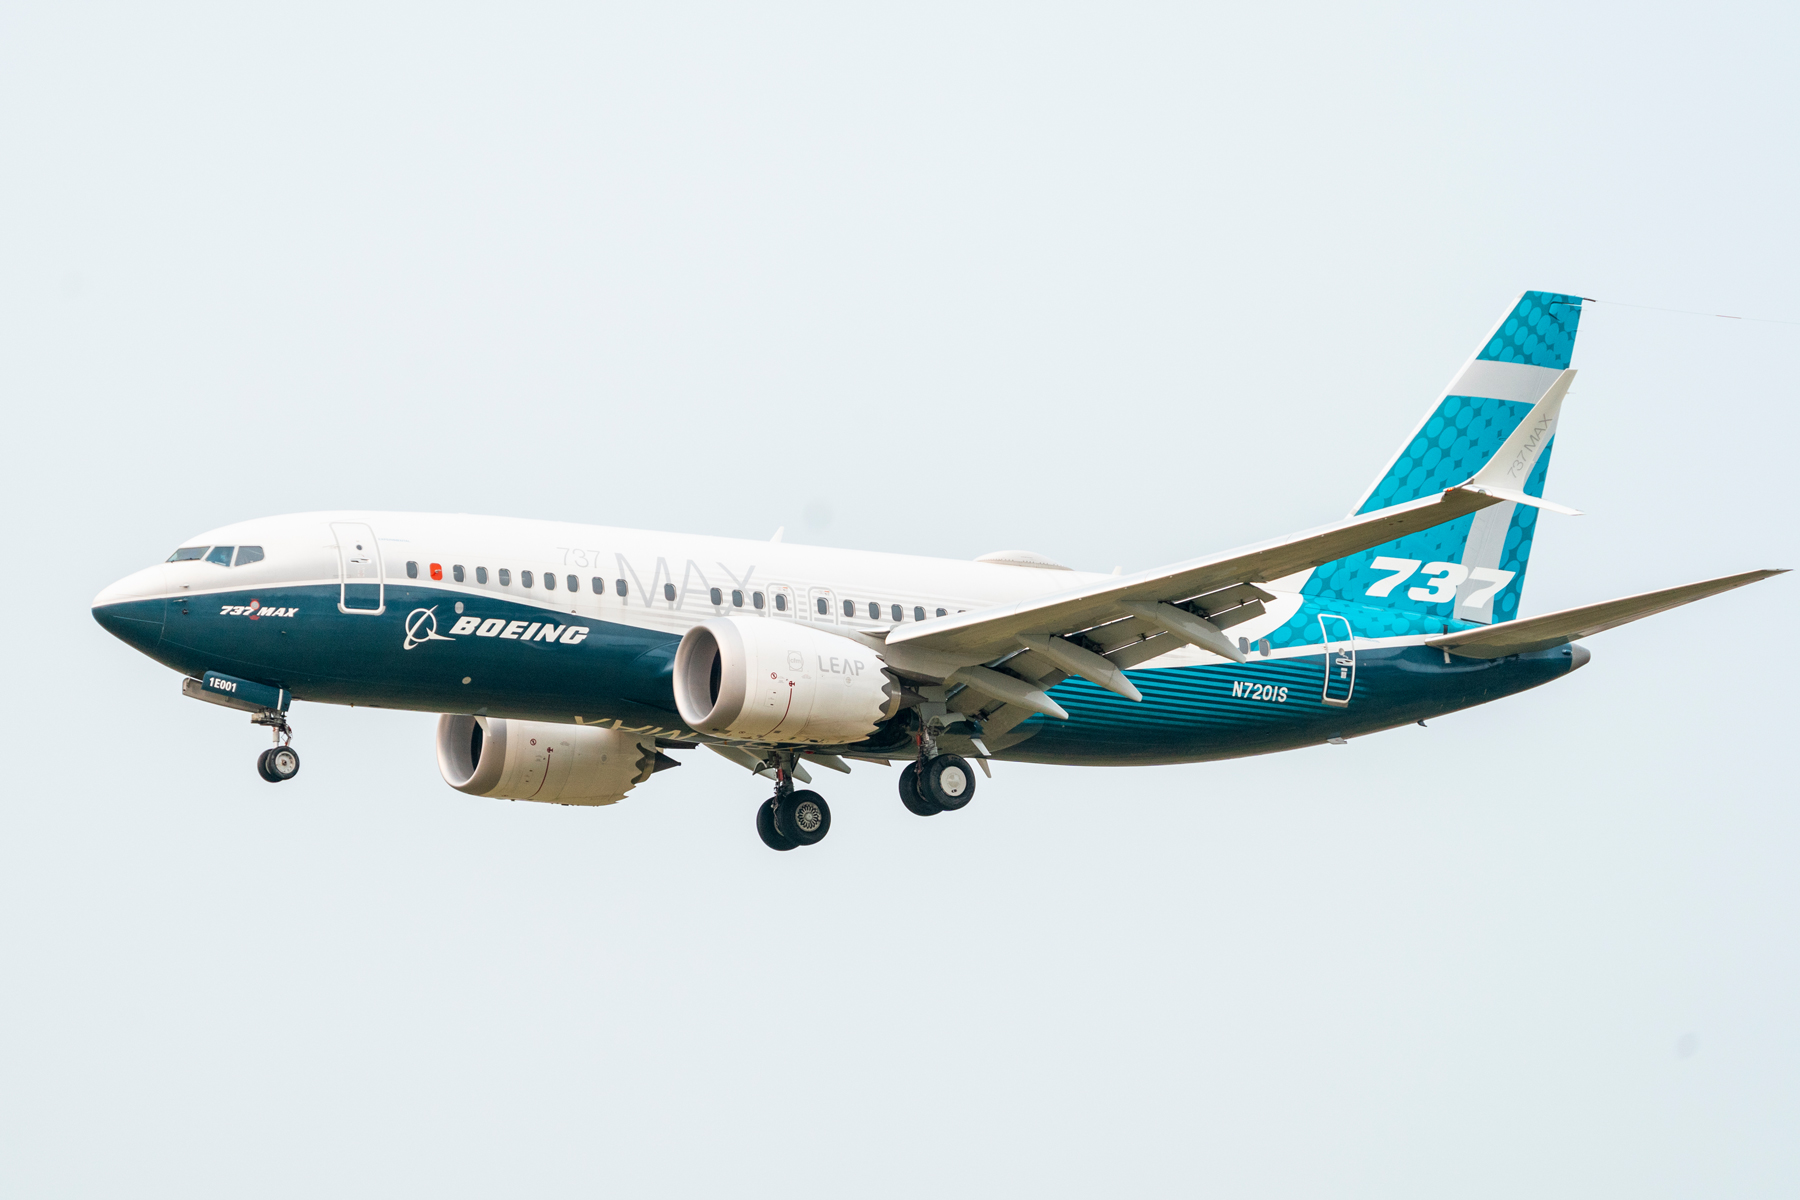 Boeing 737 MAX airplane